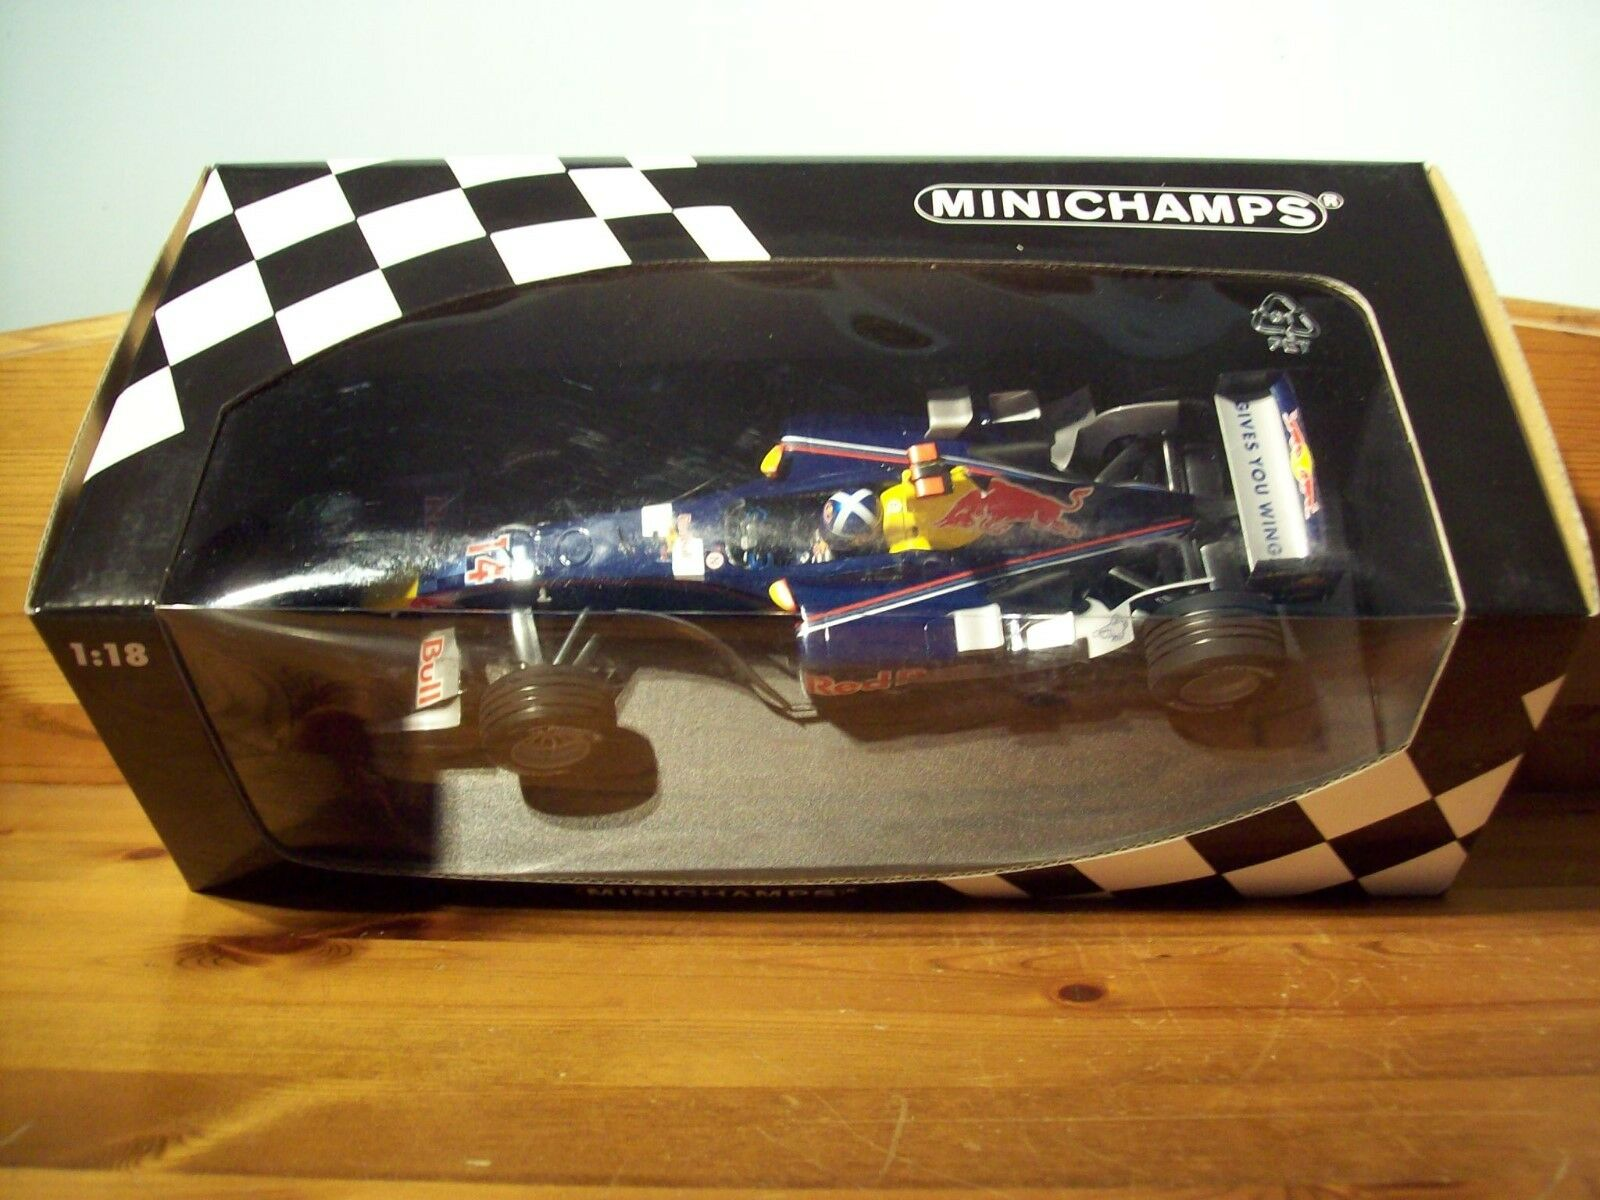 1 18 MINICHAMPS 100 050084 RED BULL RACING COSWORTH DAVID COULTHARD 2005 SHOWCAR